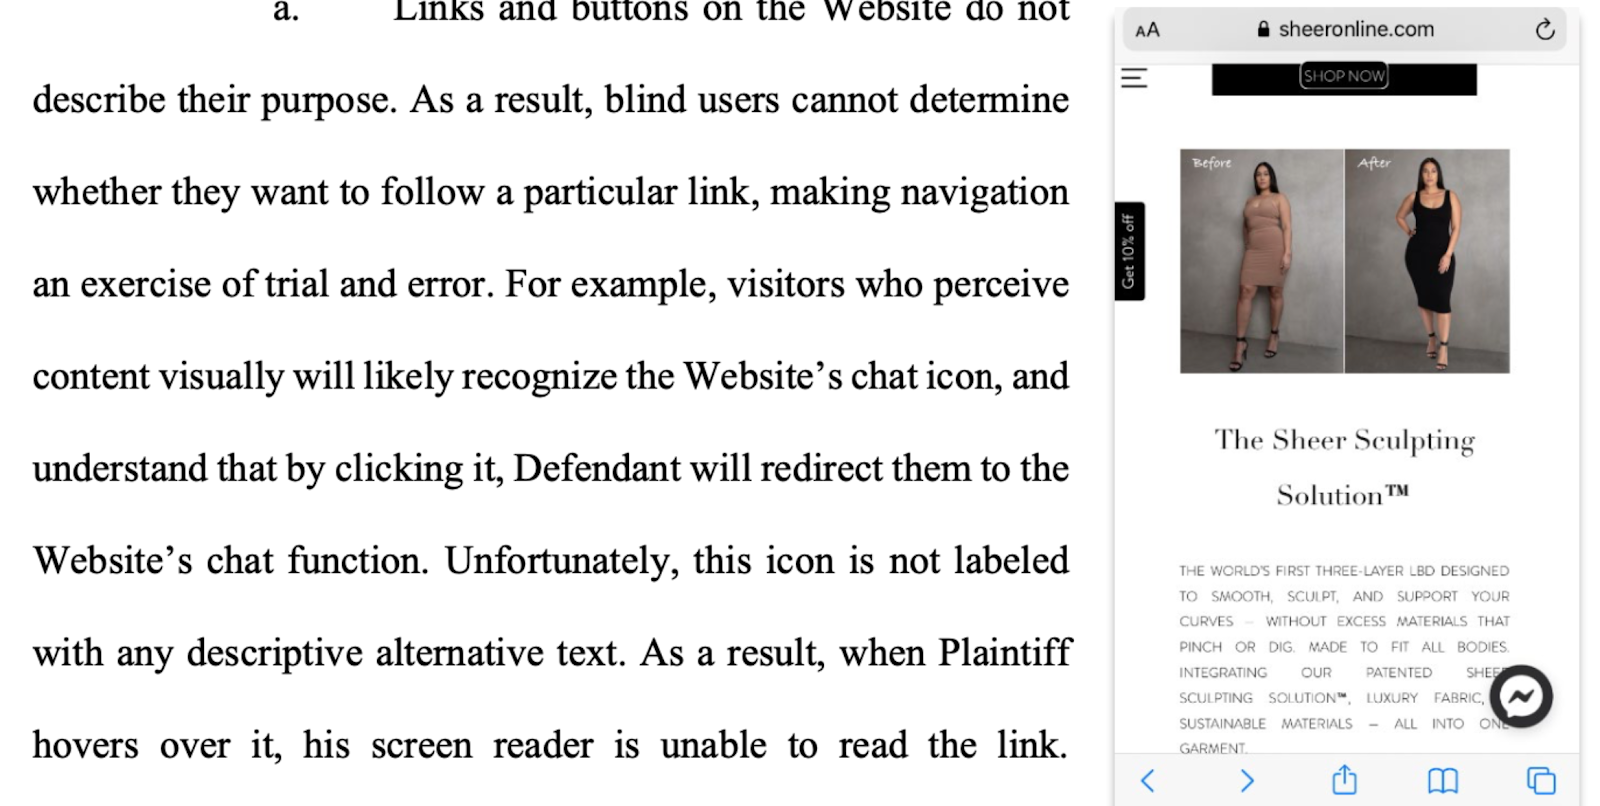 screenshot from a lawsuit explains that link and buttons do not describe their purpose. This makes it difficult for blind users to navigate. Please see text in blog for further description.